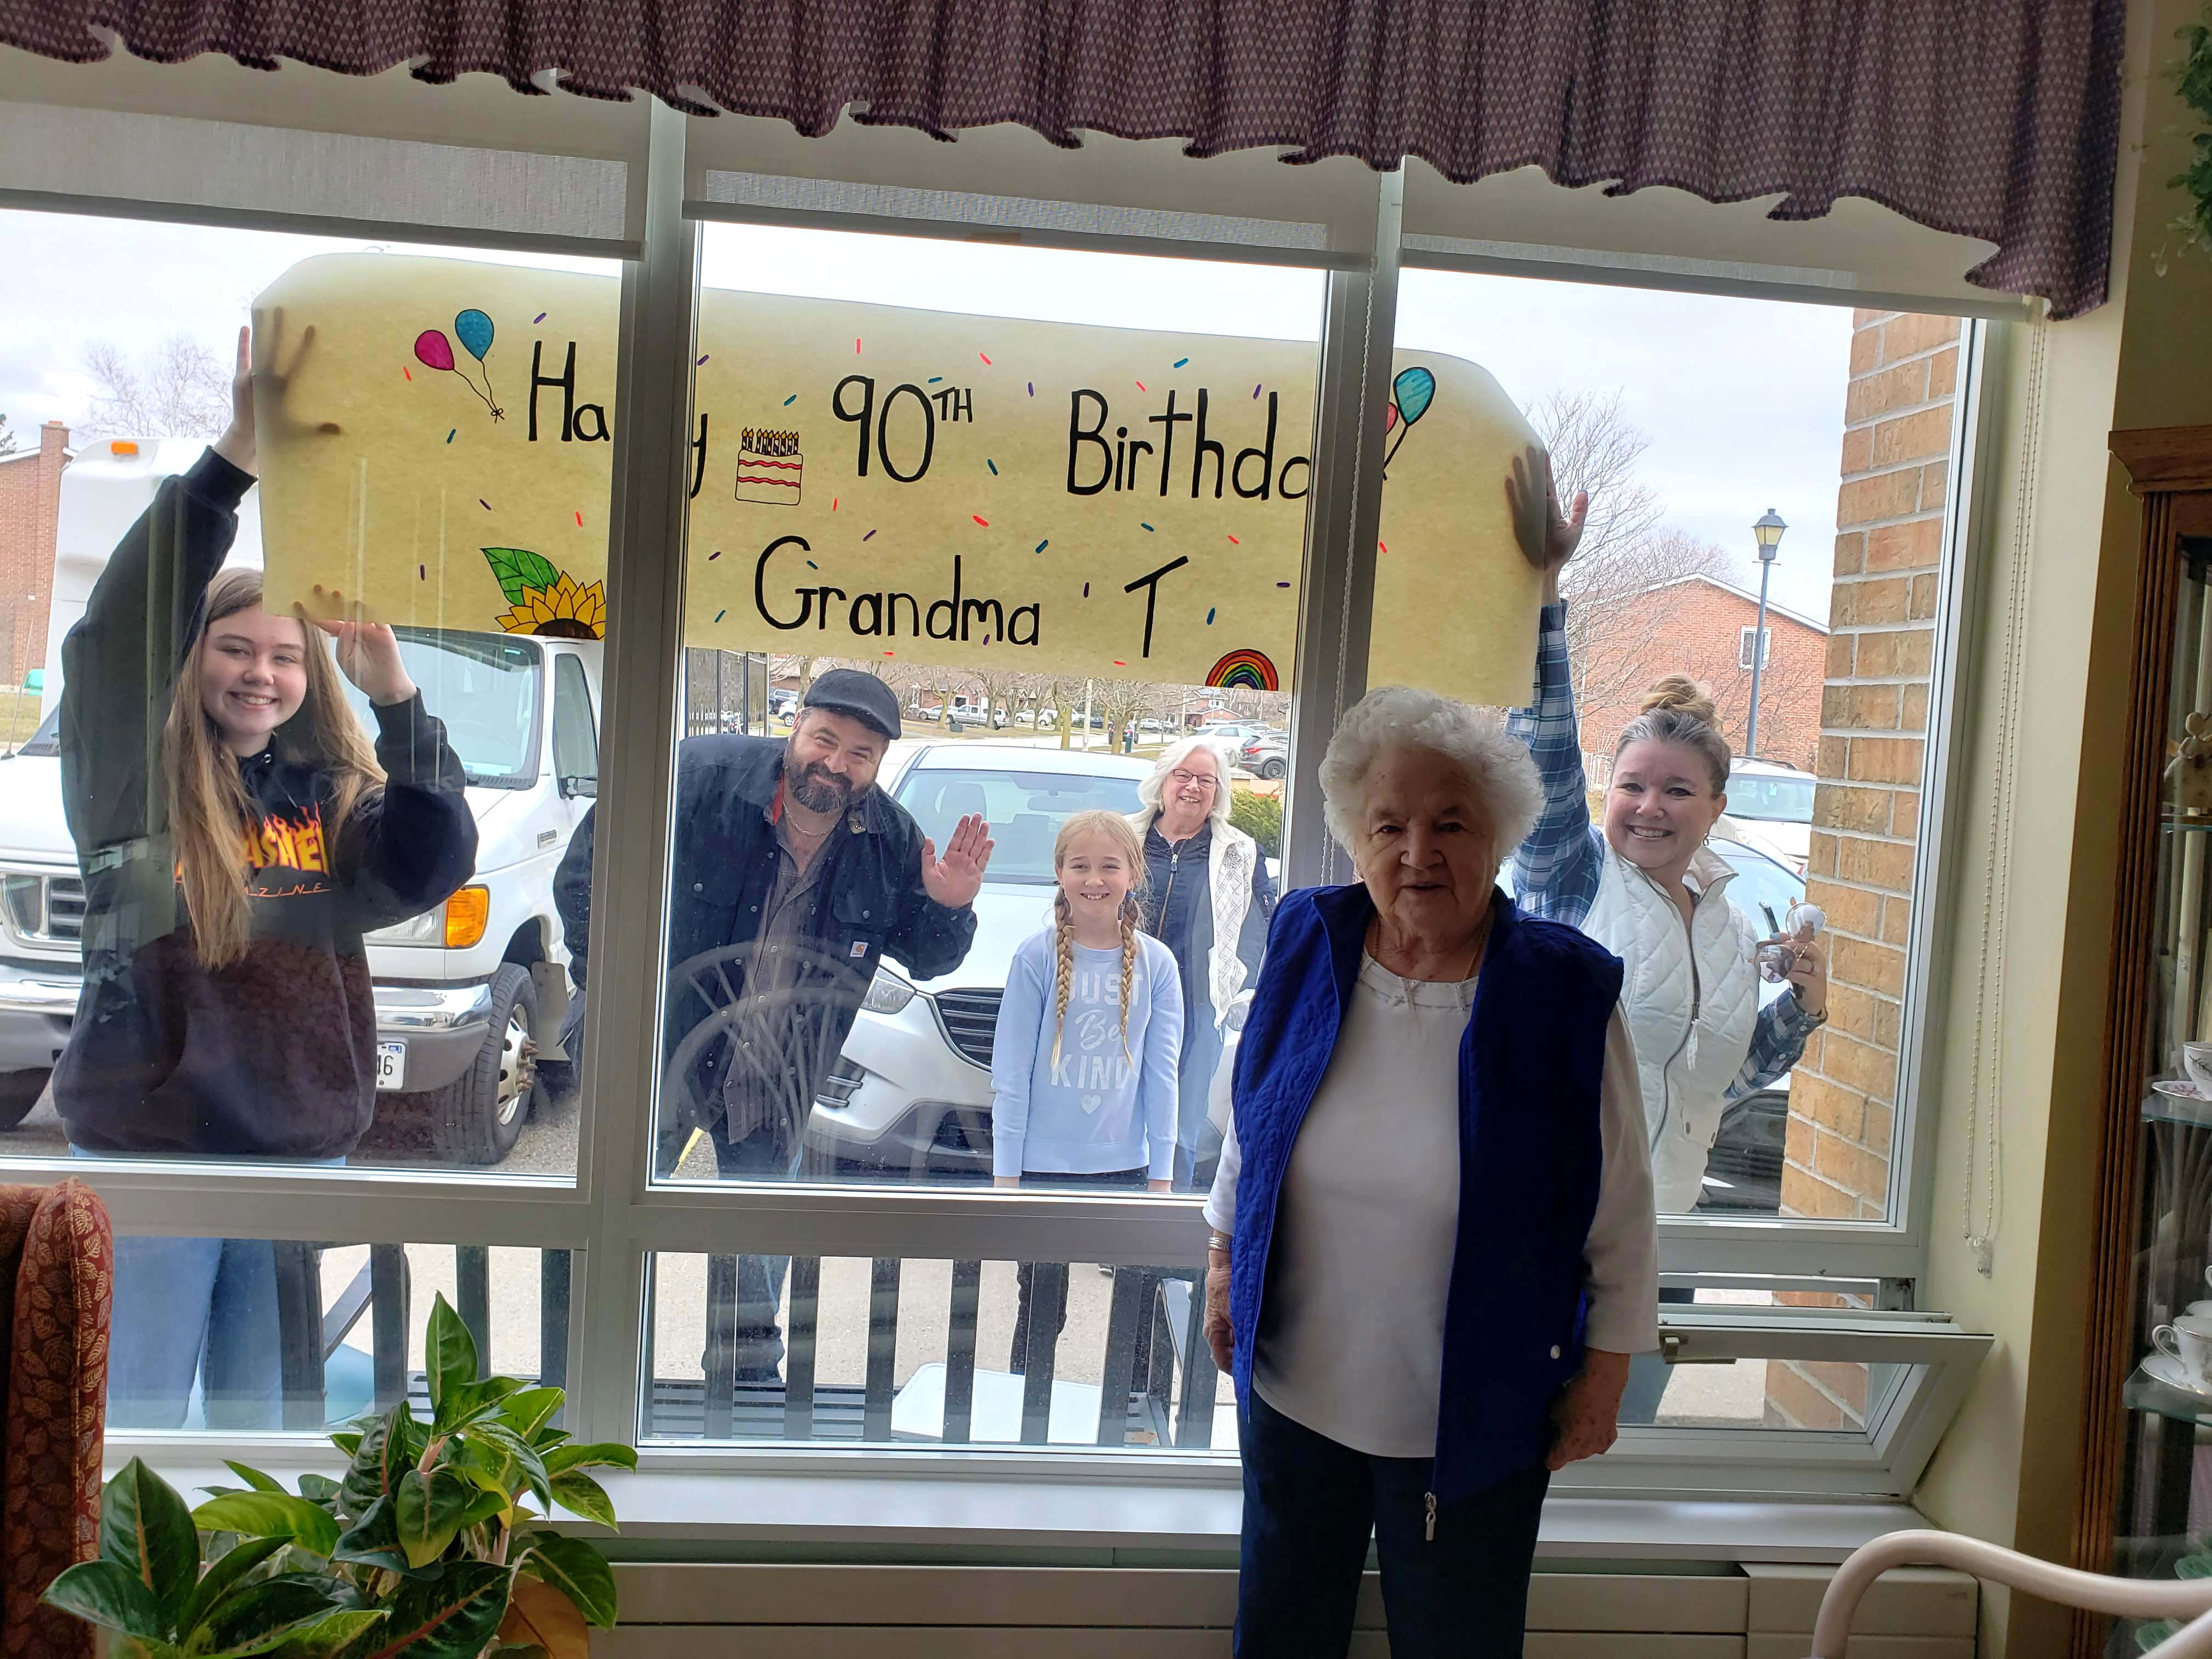 A resident family posing outdoors for a photo together to celebrate resident's 90th birthday.